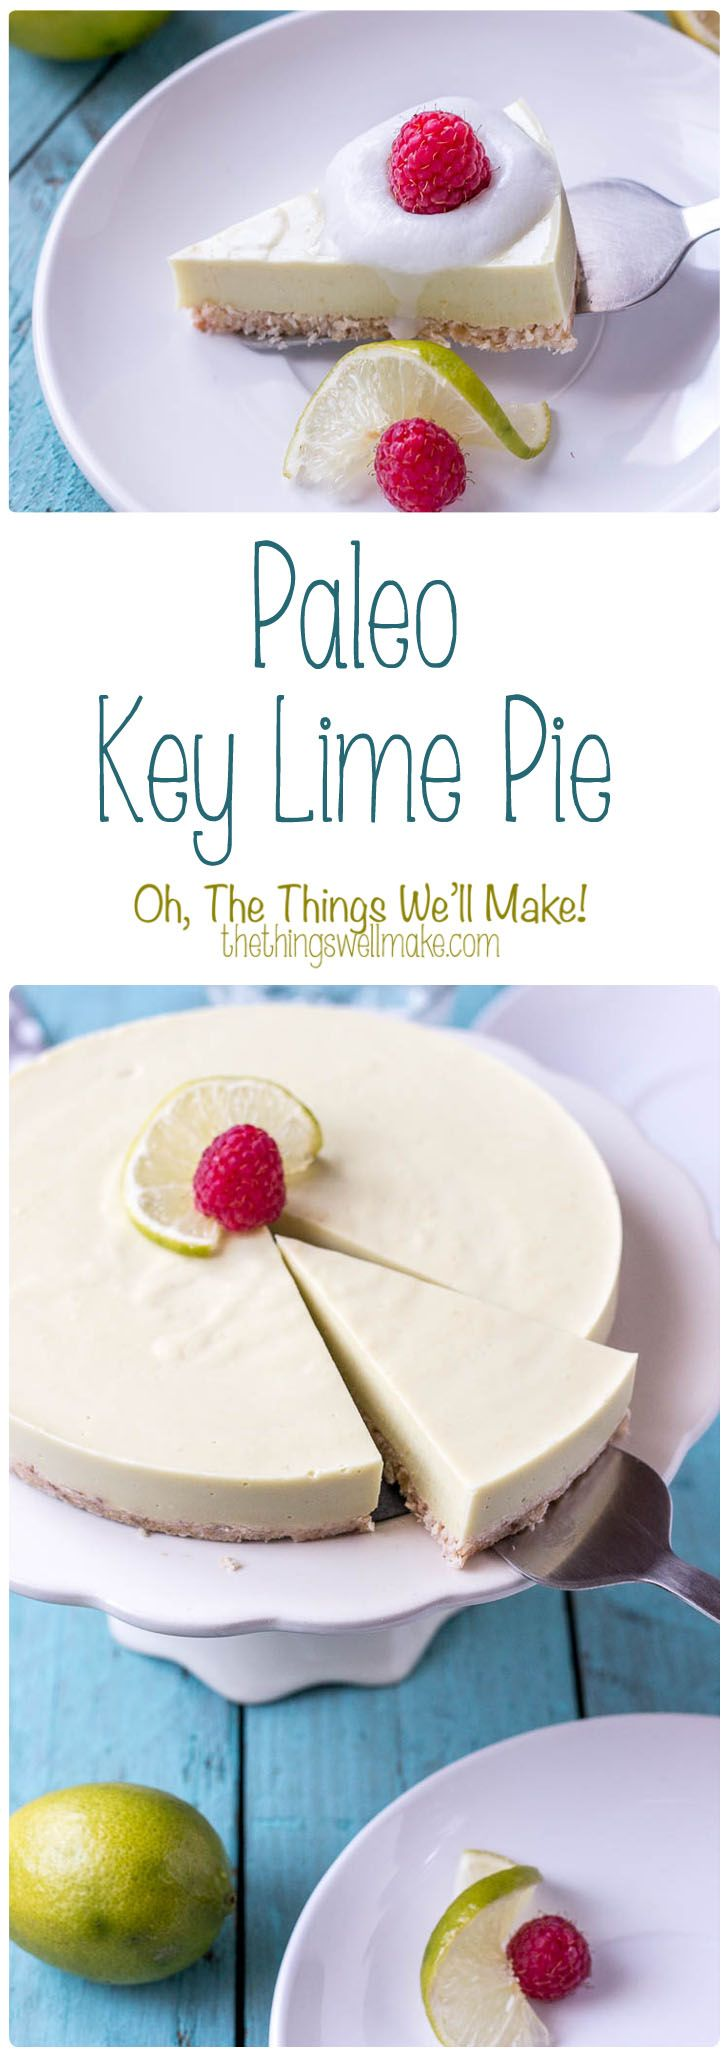 Smooth and creamy, this naturally green paleo key lime pie is tangy yet subtly sweet.